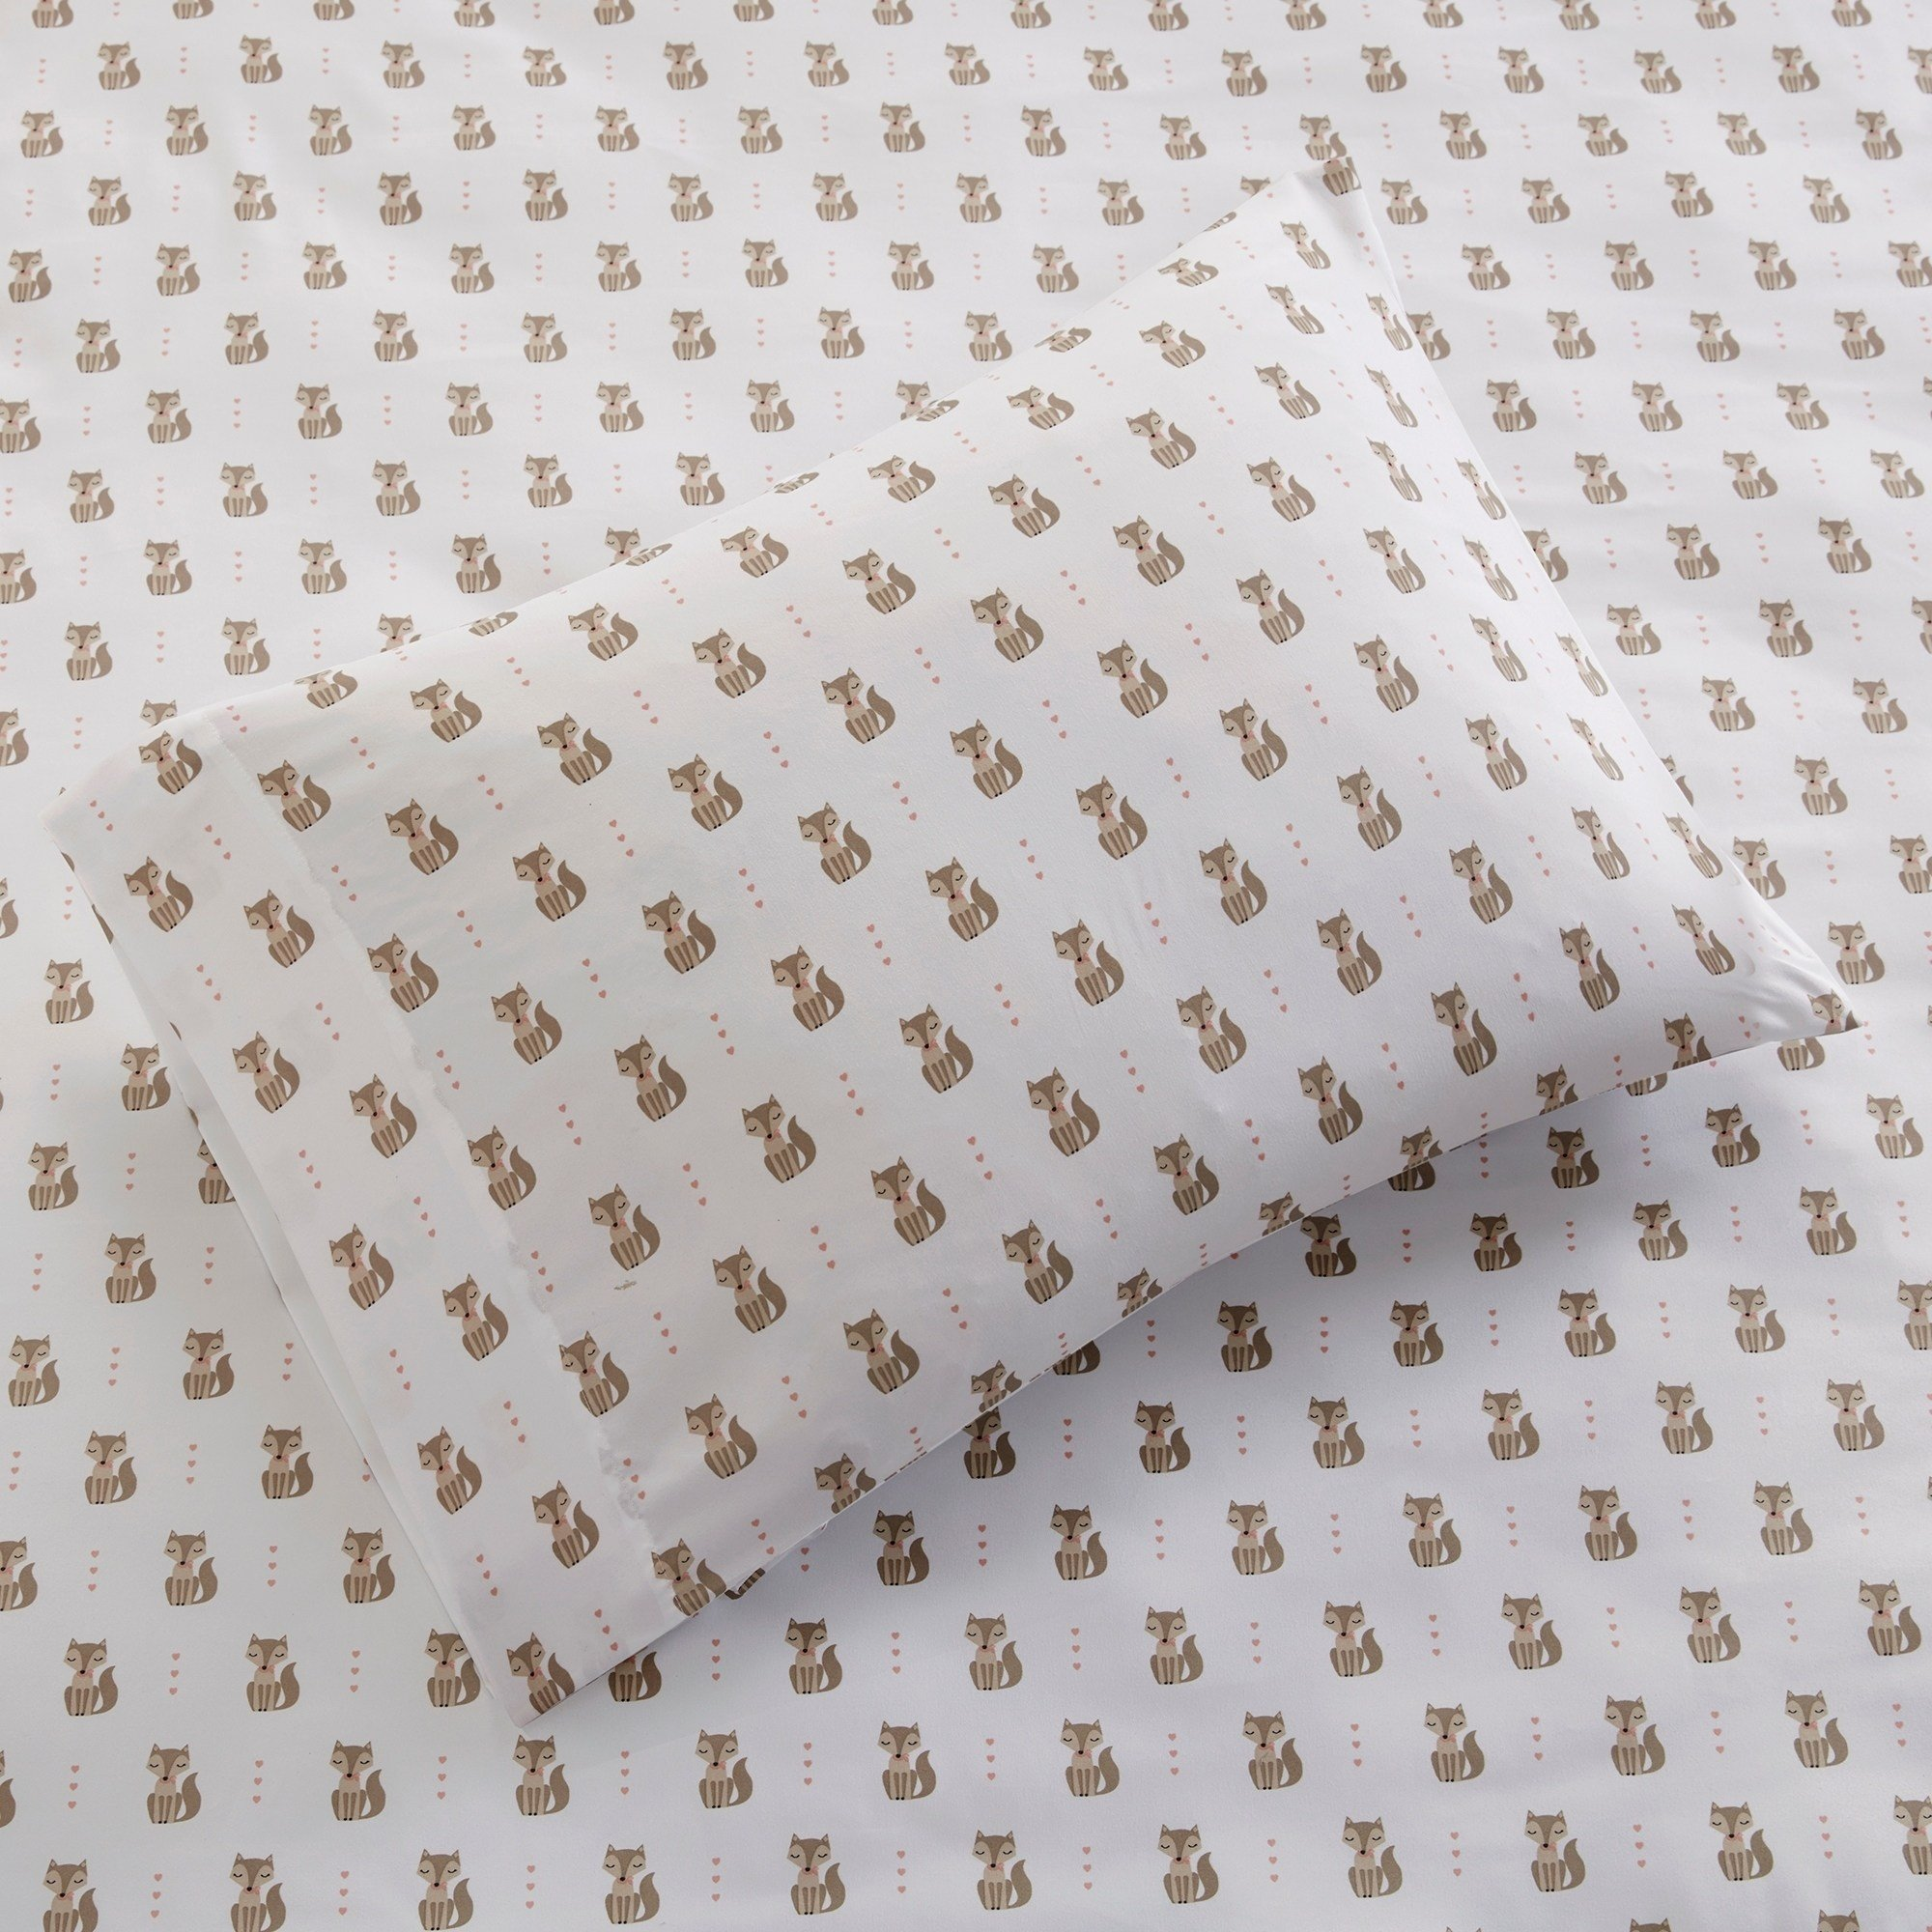 TN 3 Piece Off White Blue Cute Foxes Sheet Set Twin XL Sized, Cuddly Fox Bedding Pink Hearts Pattern Forest Animal Kids Childrens, Microfiber Polyester by TN (Image #3)